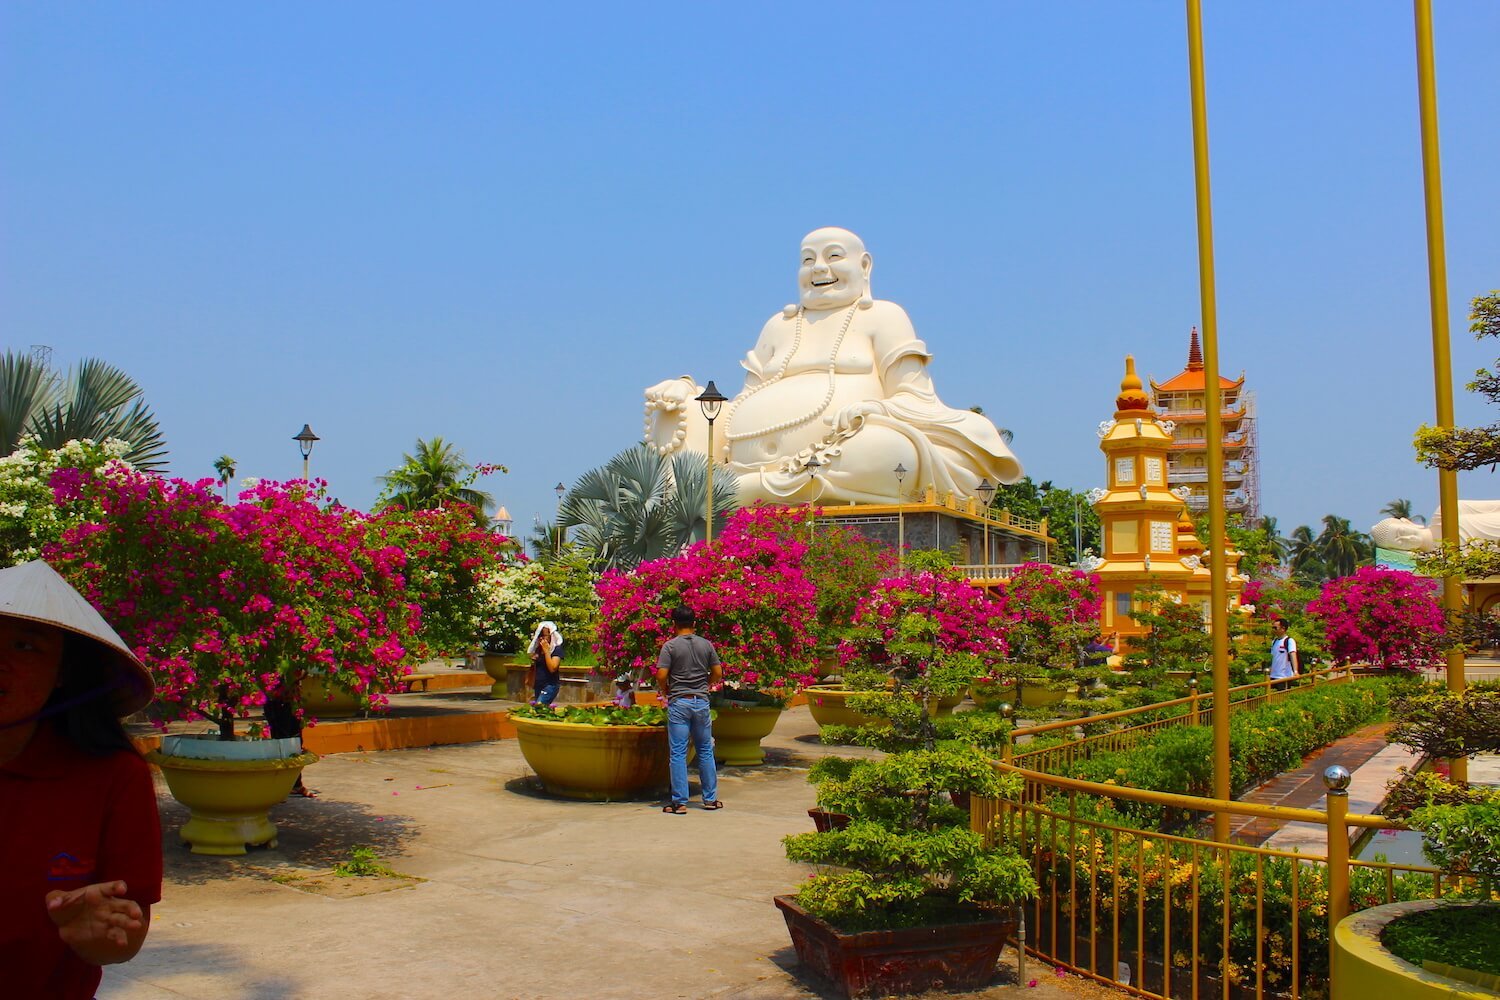 vinh trang temple and pagoda fat laughing buddha